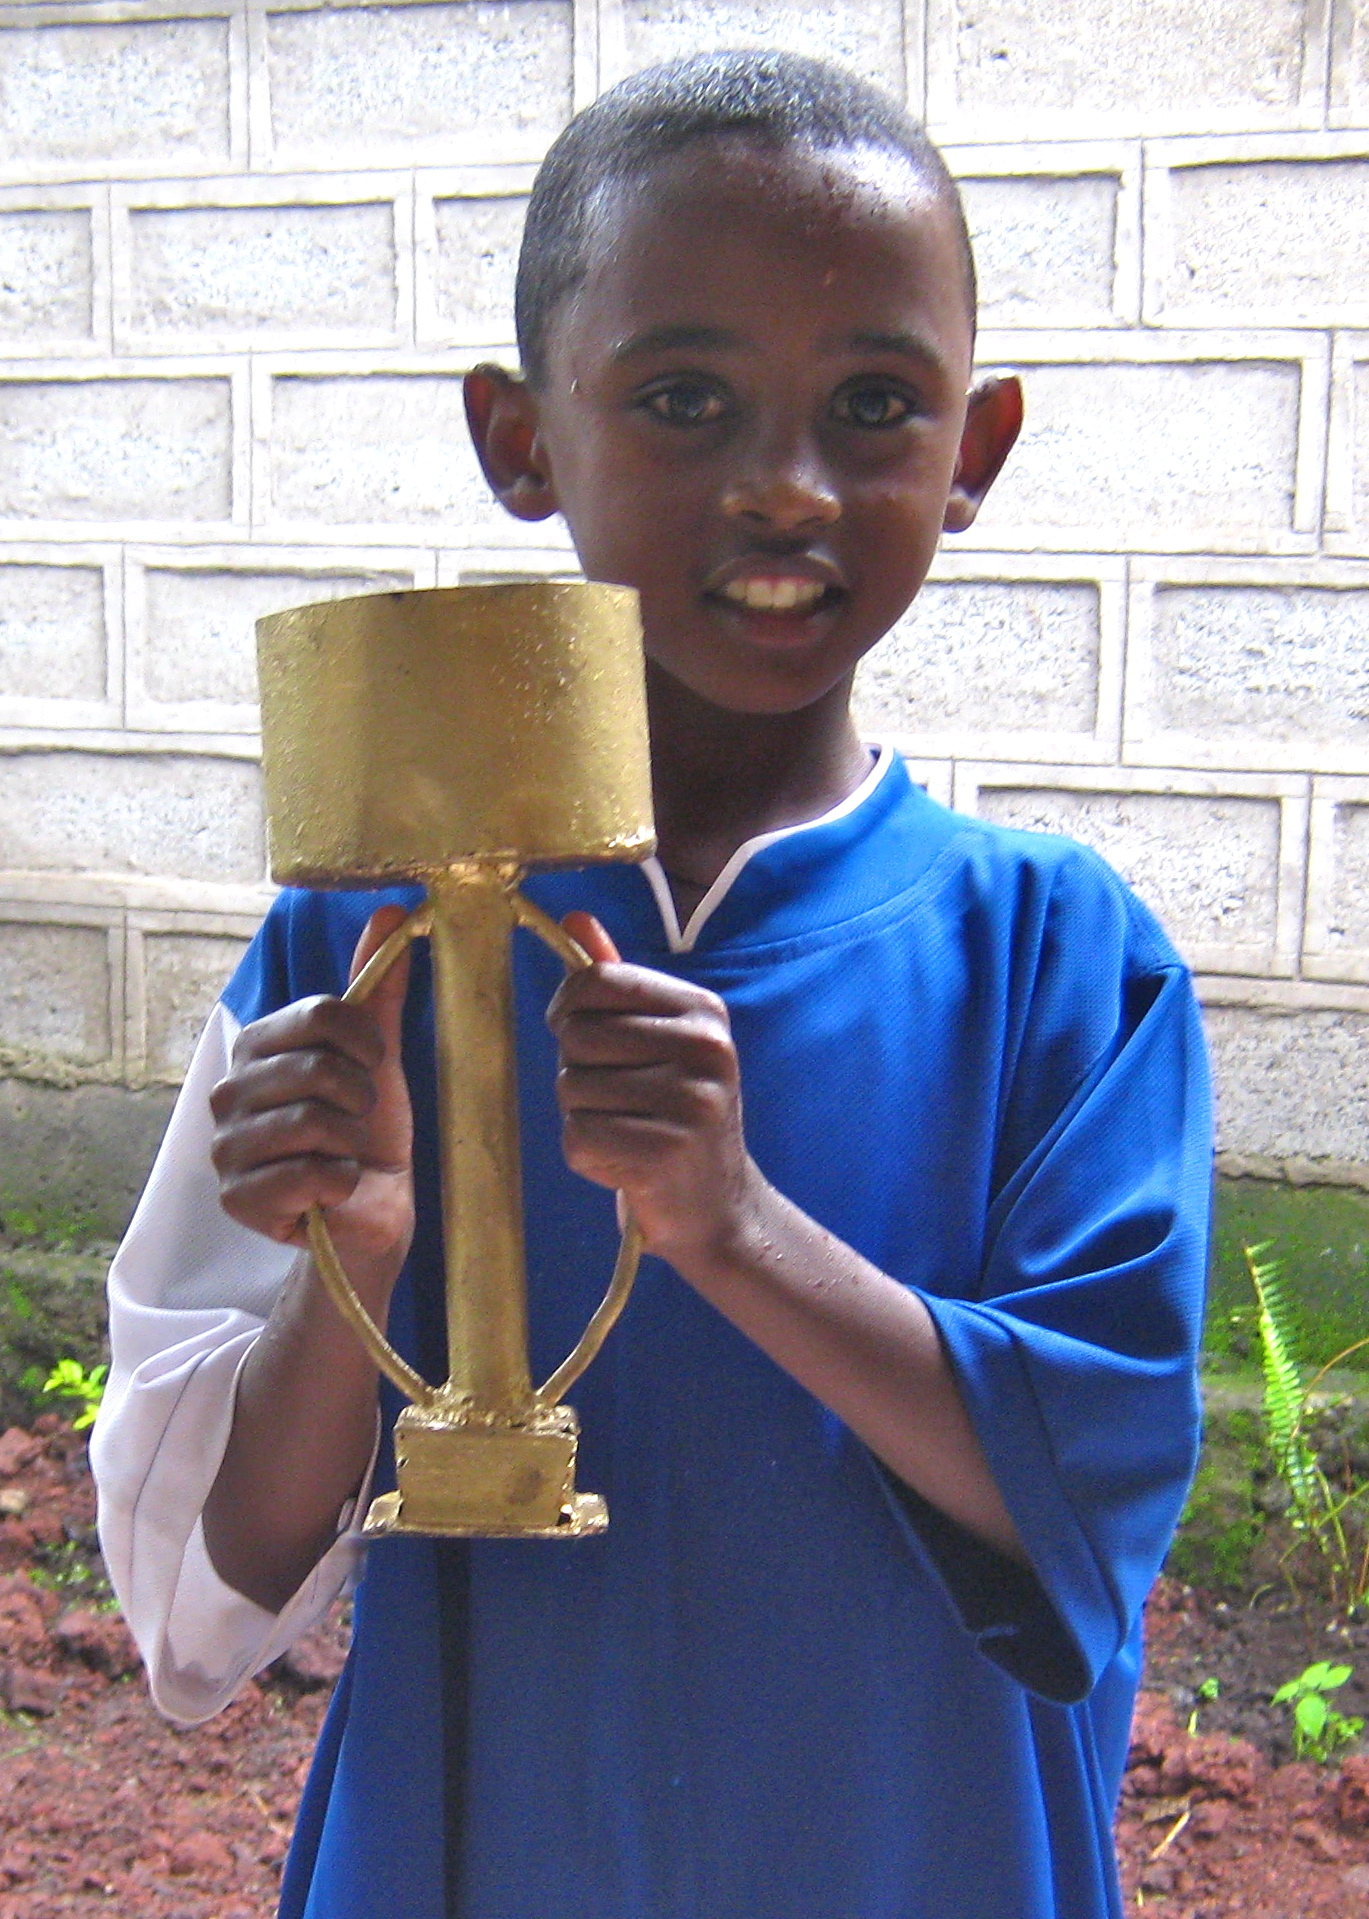 'Little Torres' with the cup